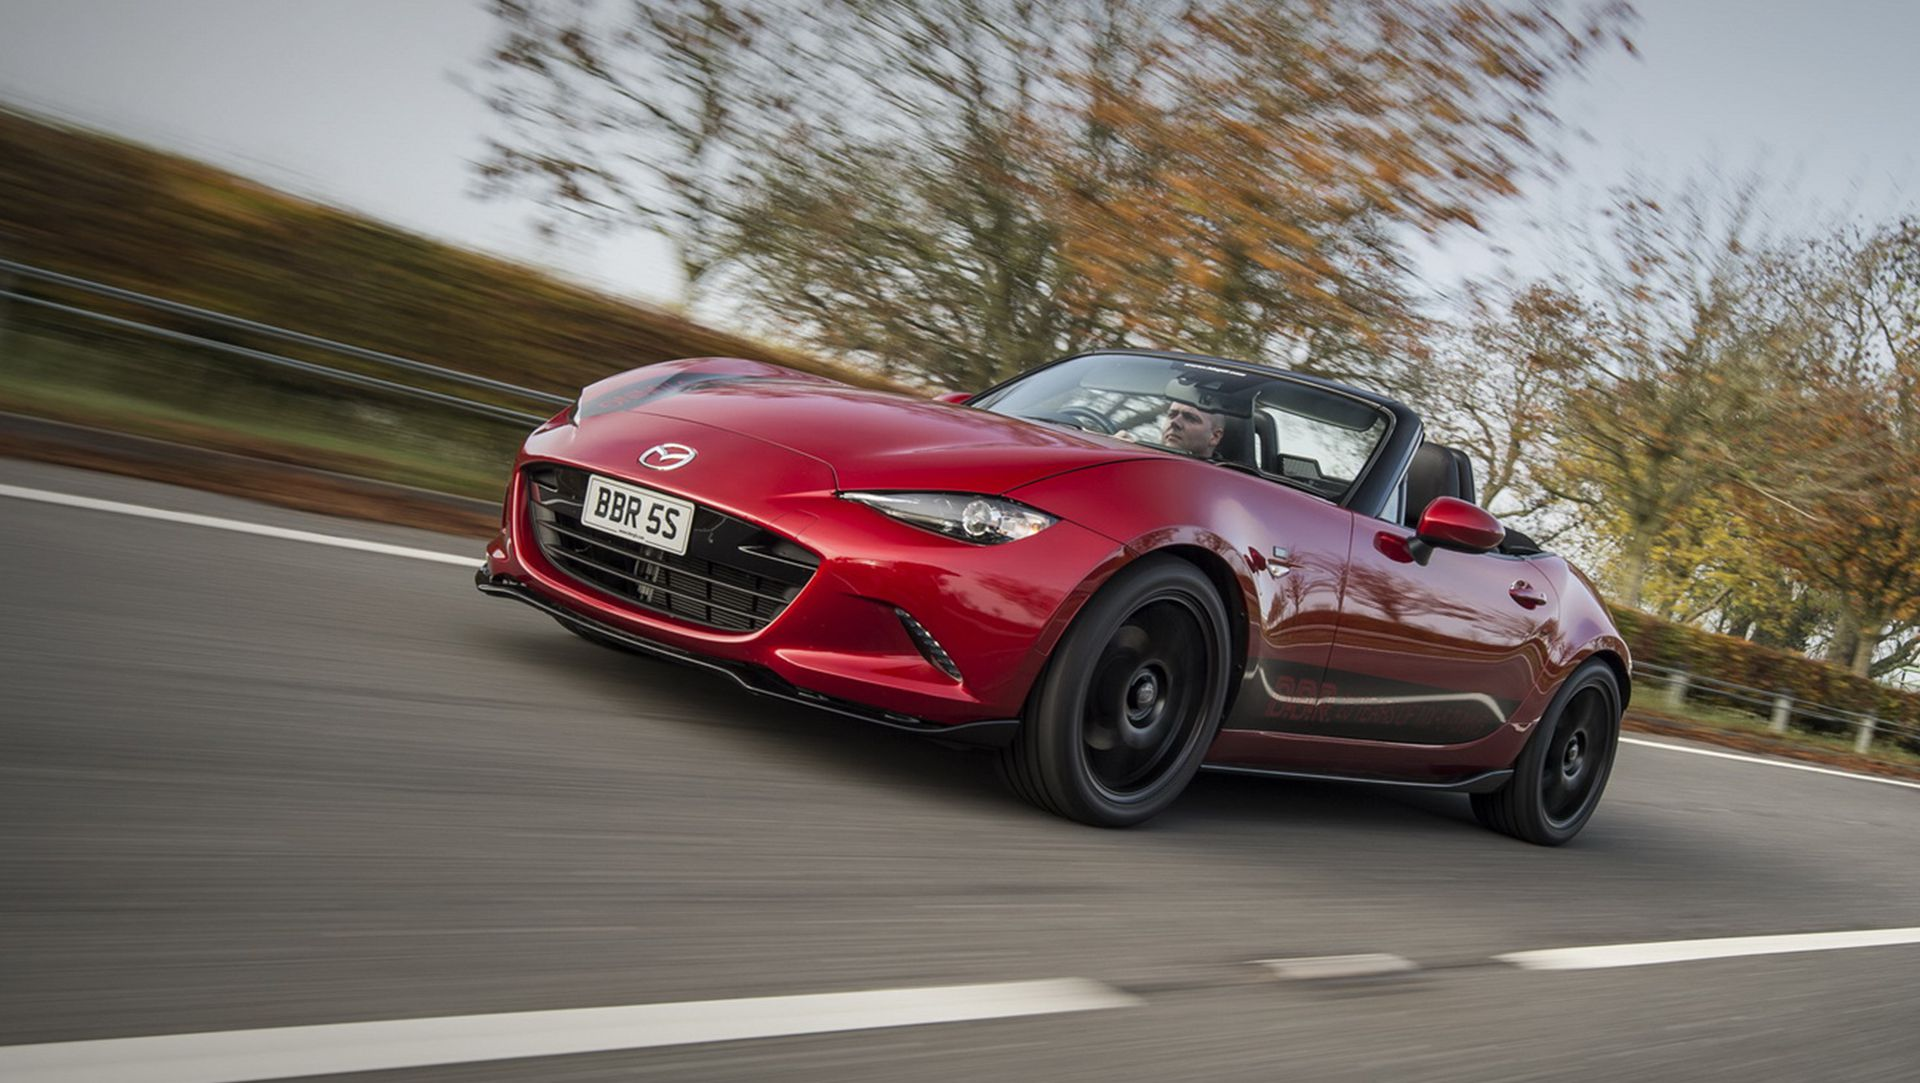 mazda mx 5 nd gets its first power upgrades auto moto. Black Bedroom Furniture Sets. Home Design Ideas